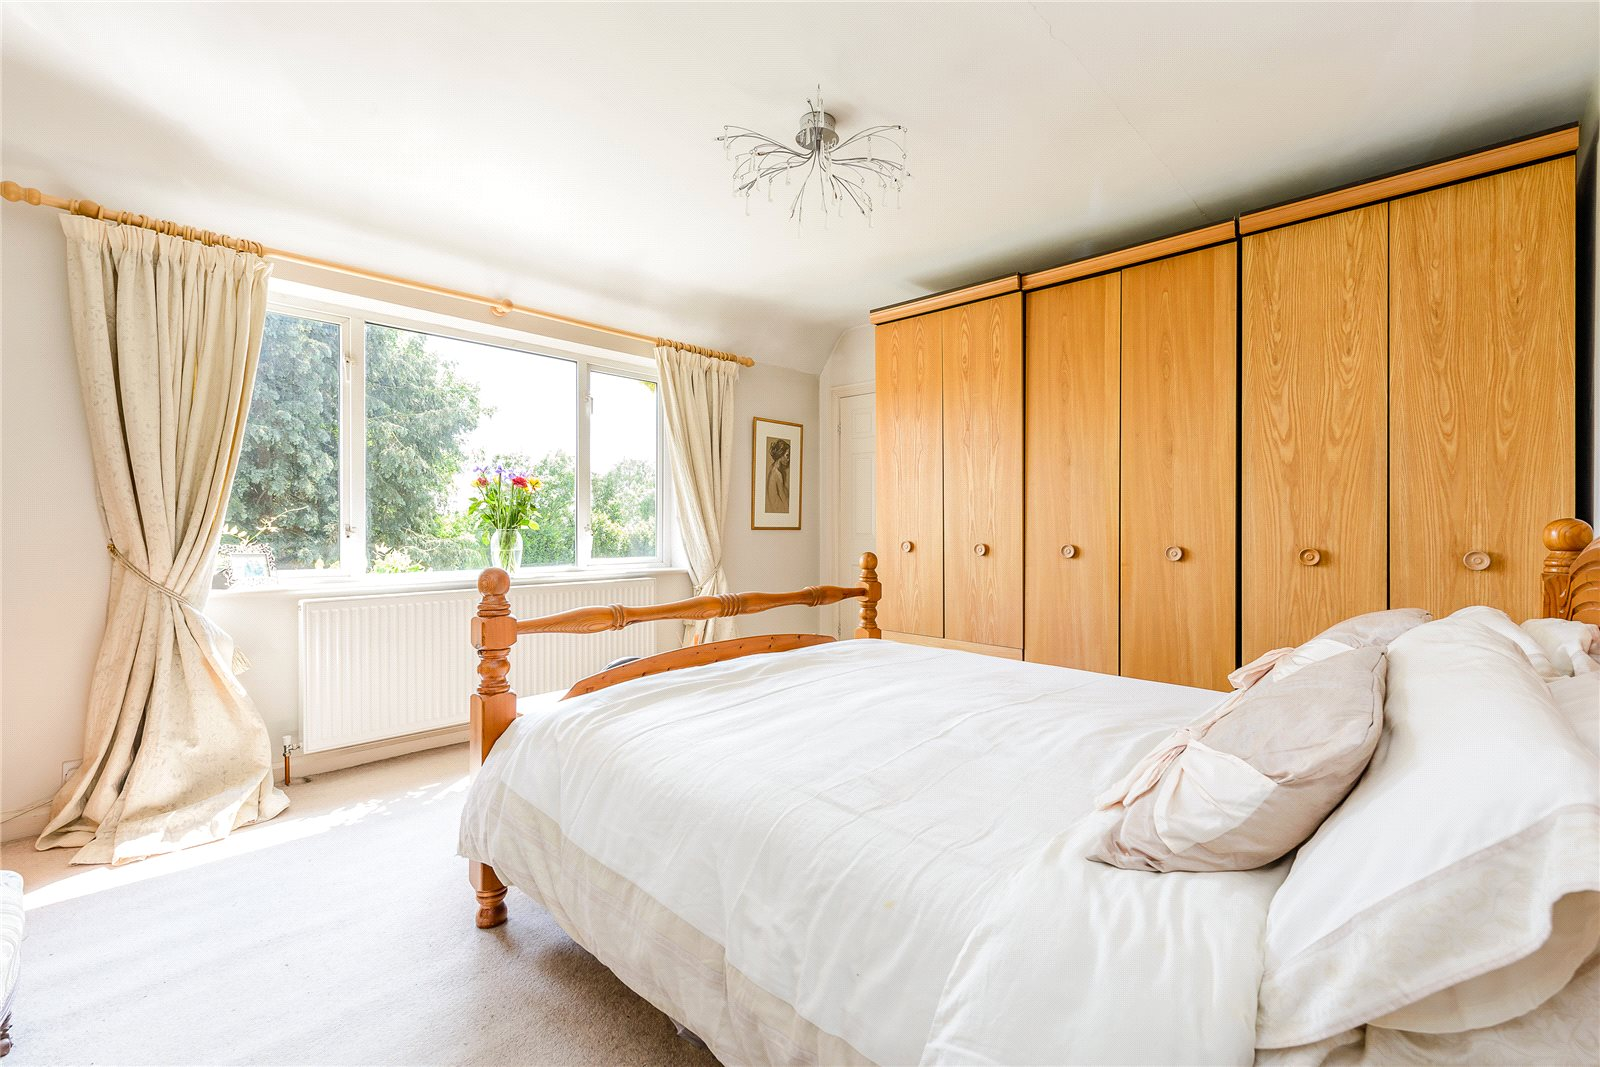 Additional photo for property listing at Fulmer Lane, Fulmer, Buckinghamshire, SL3 Fulmer, Αγγλια